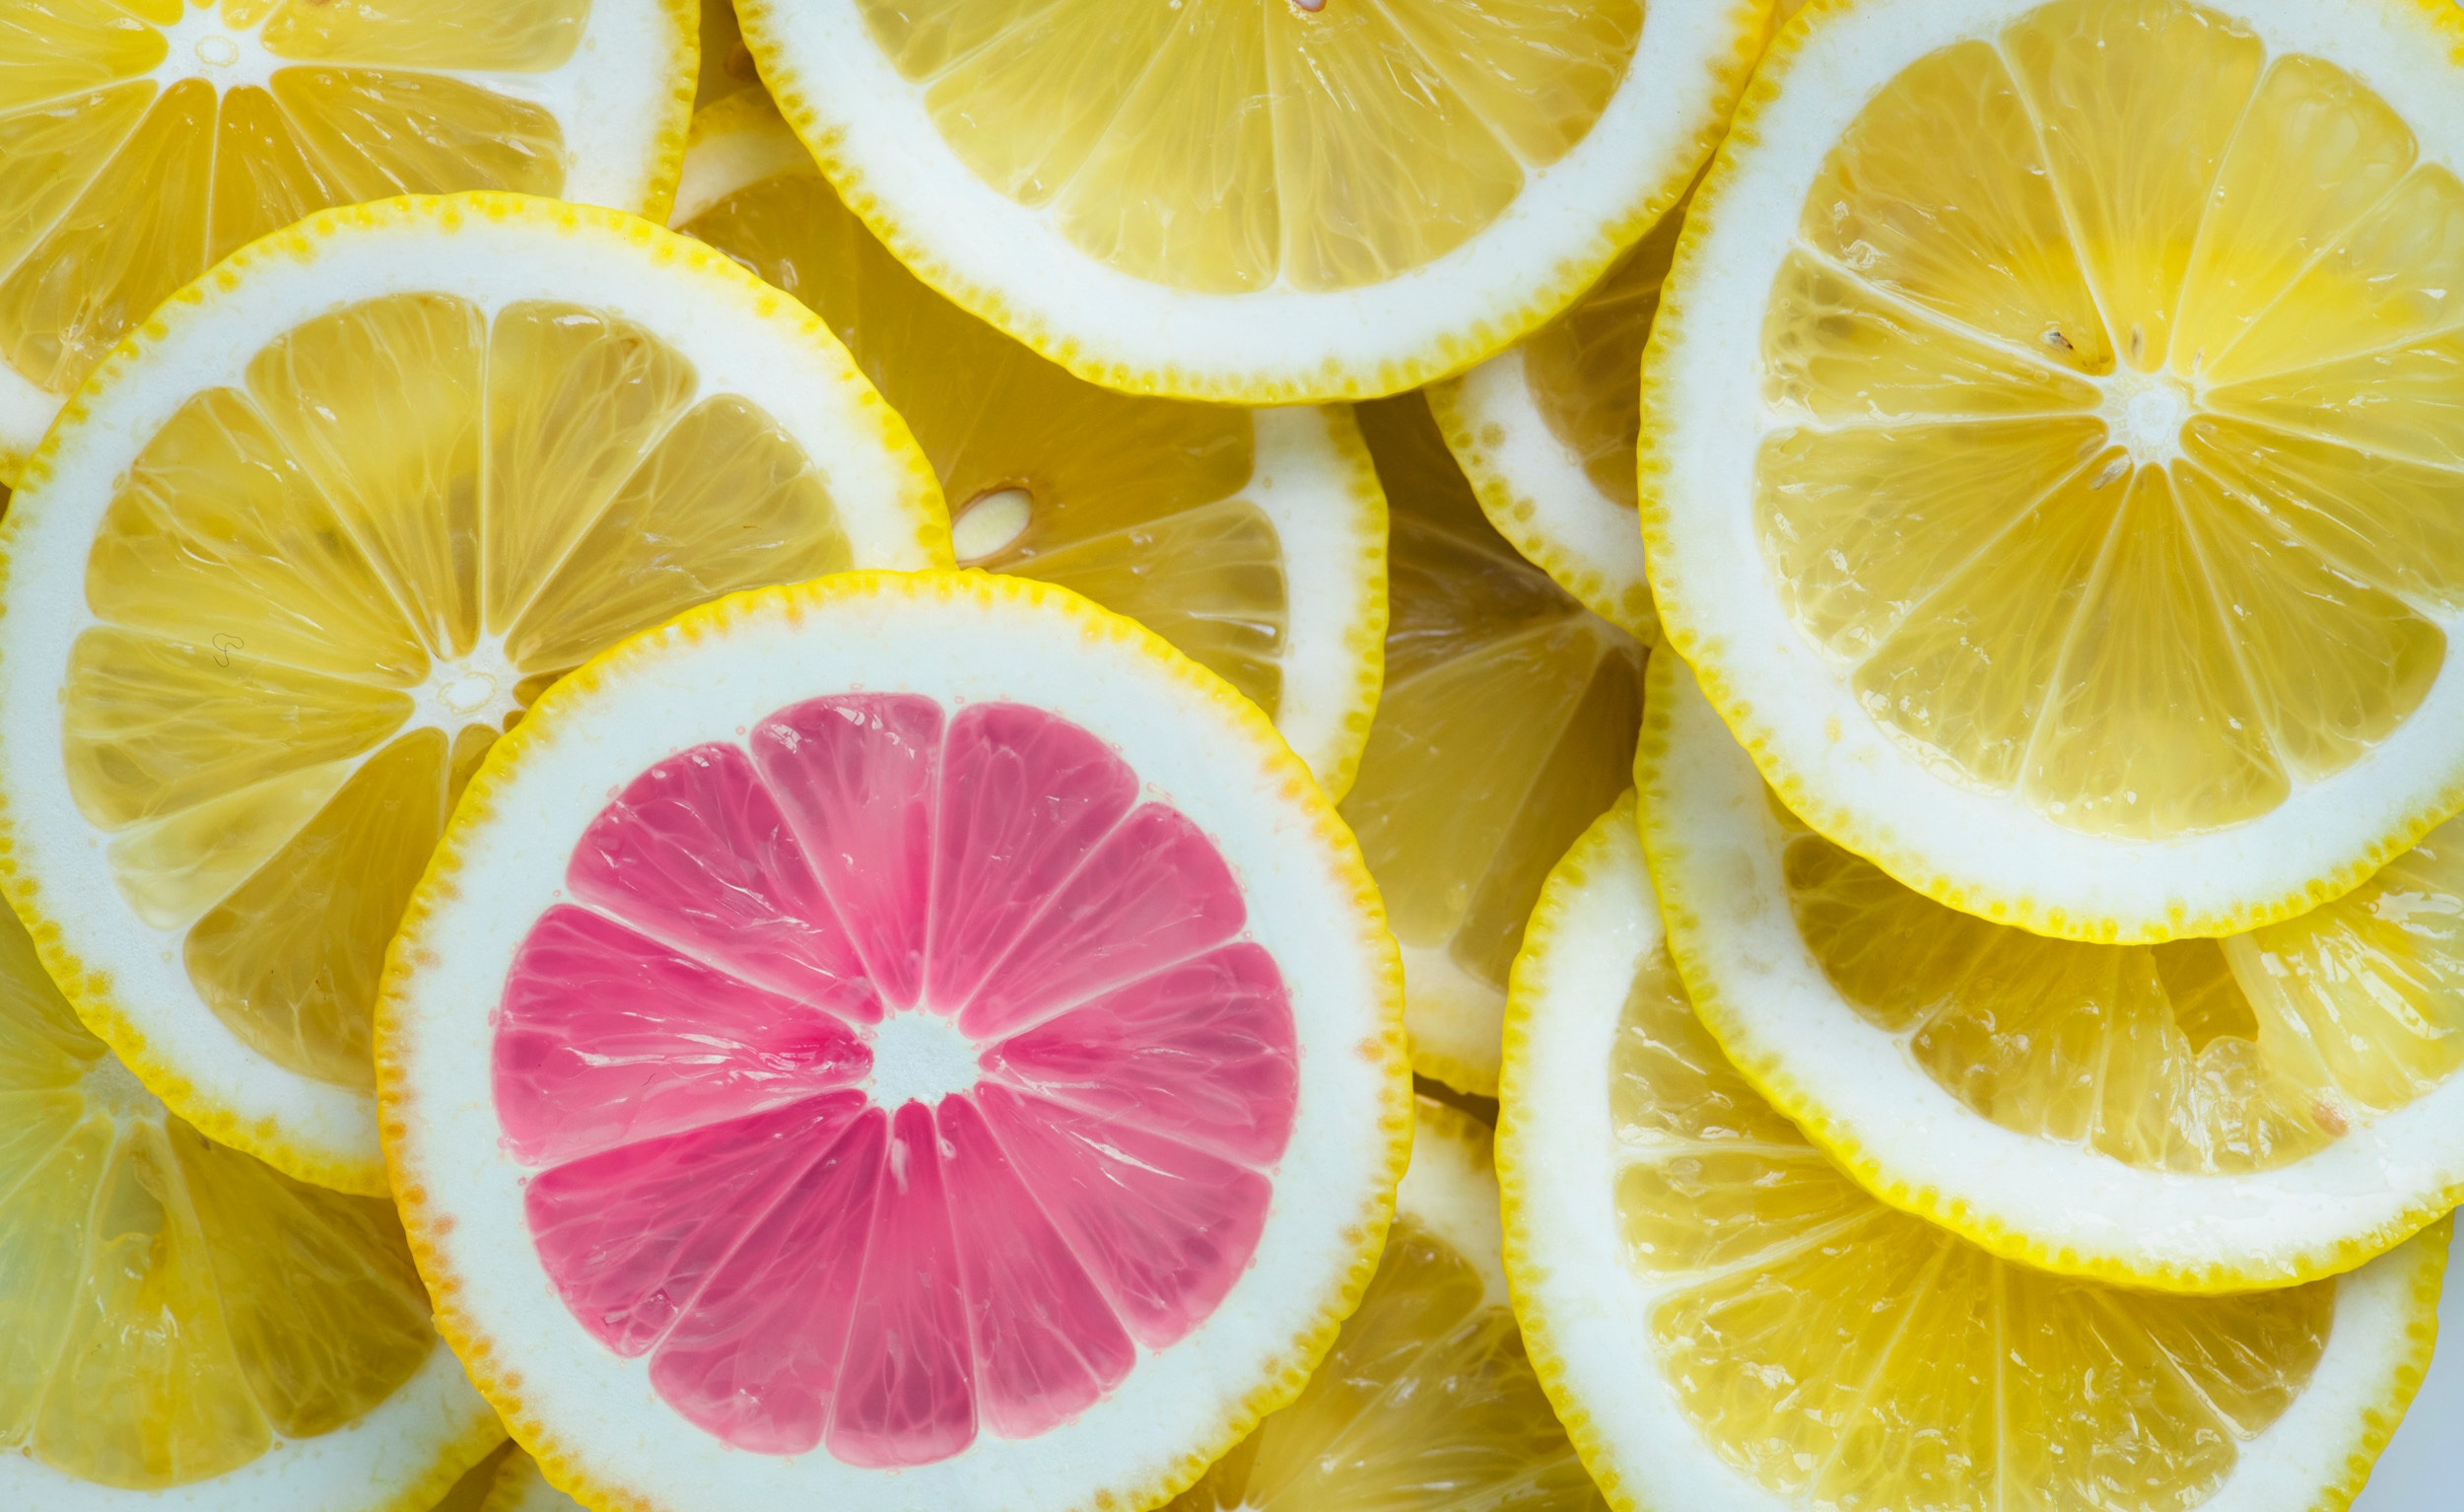 unique lemons rawpixel-623459-unsplash